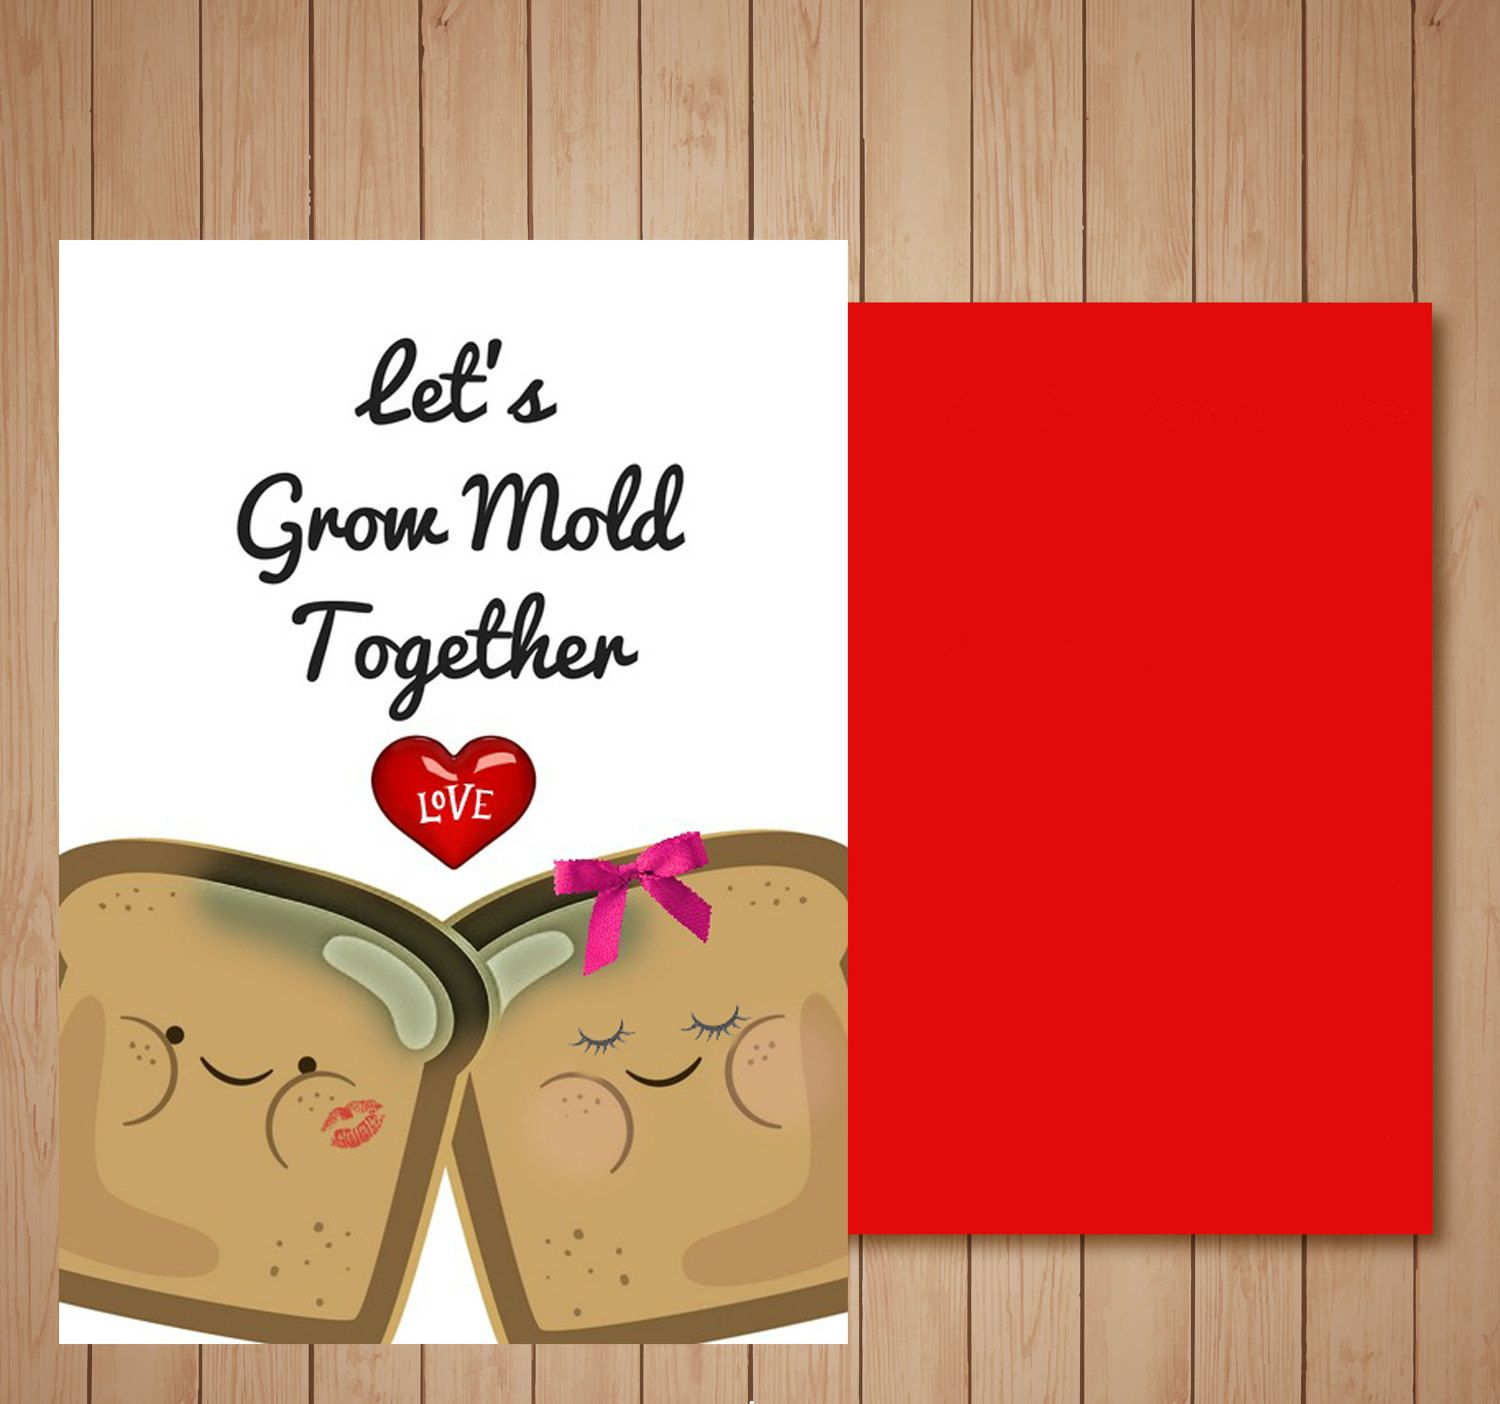 Cute Funny Valentines Day CardLets Grow Mold Together